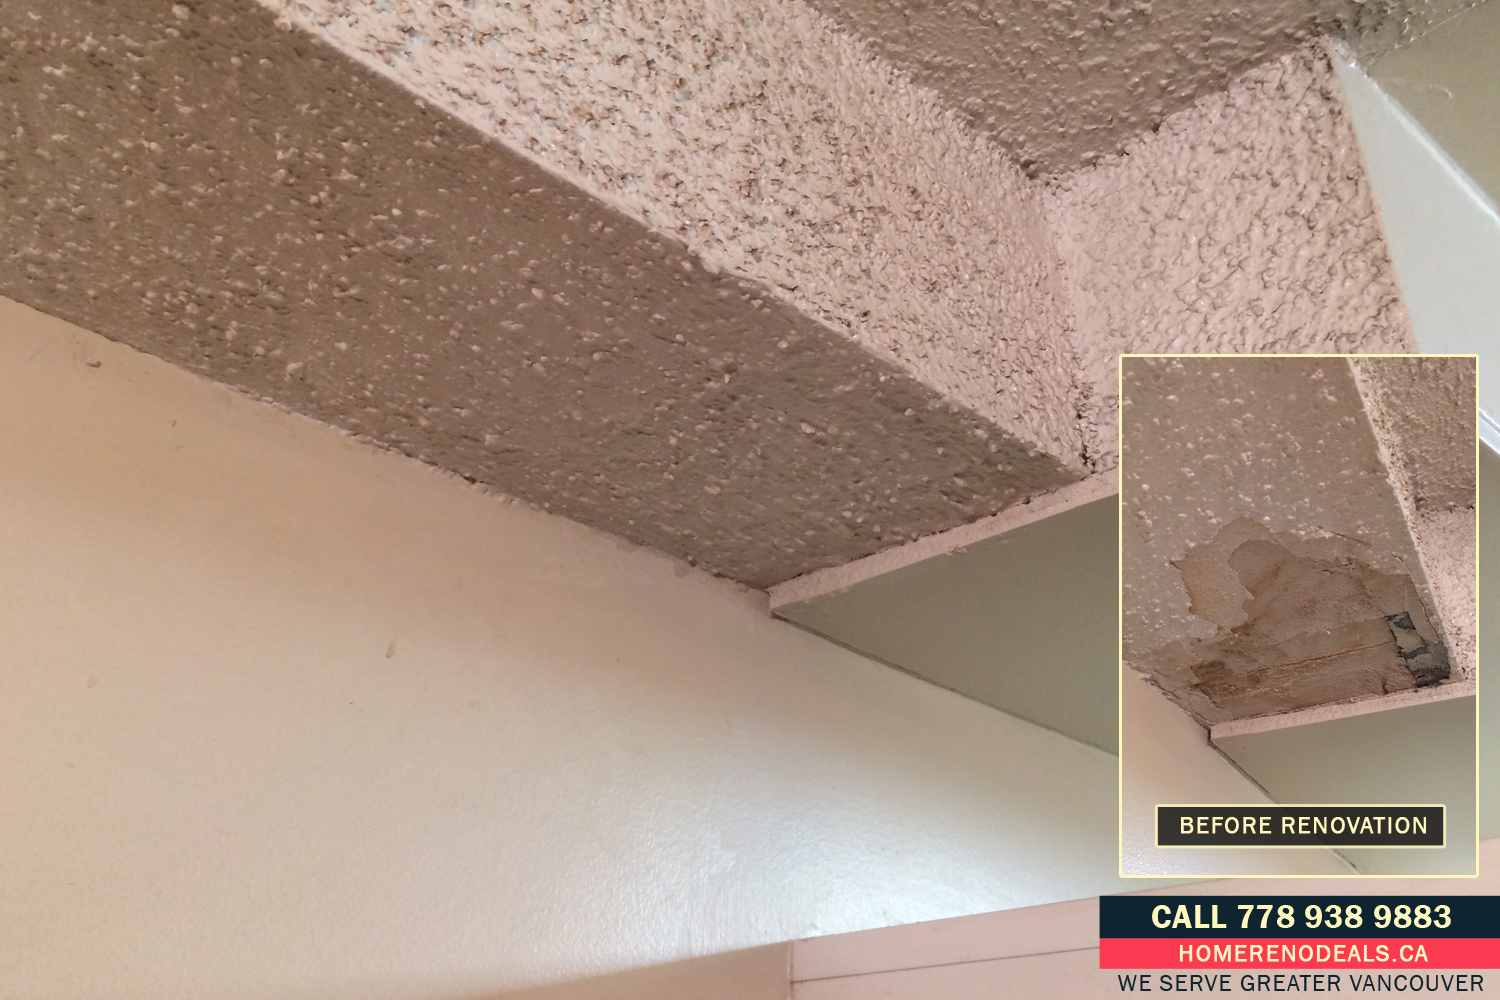 Ideal Popcorn Ceiling Texture Repair Service in Greater Vancouver, BC SX31